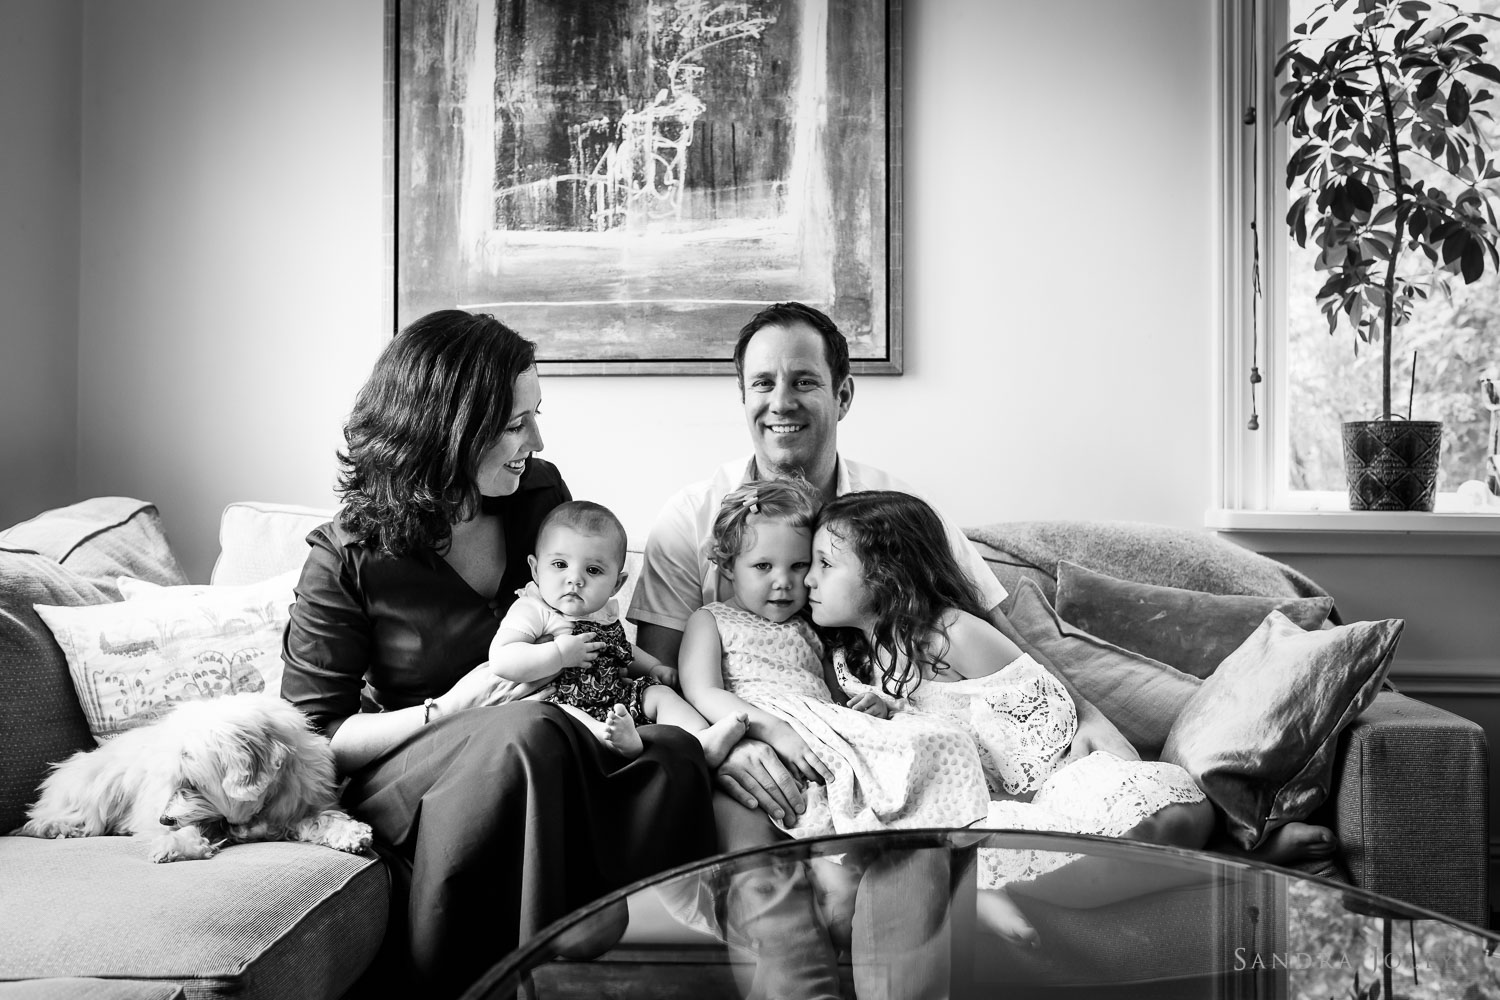 lifestyle-family-photography-by-familjefotograf-stockholm-sandra-jolly.jpg